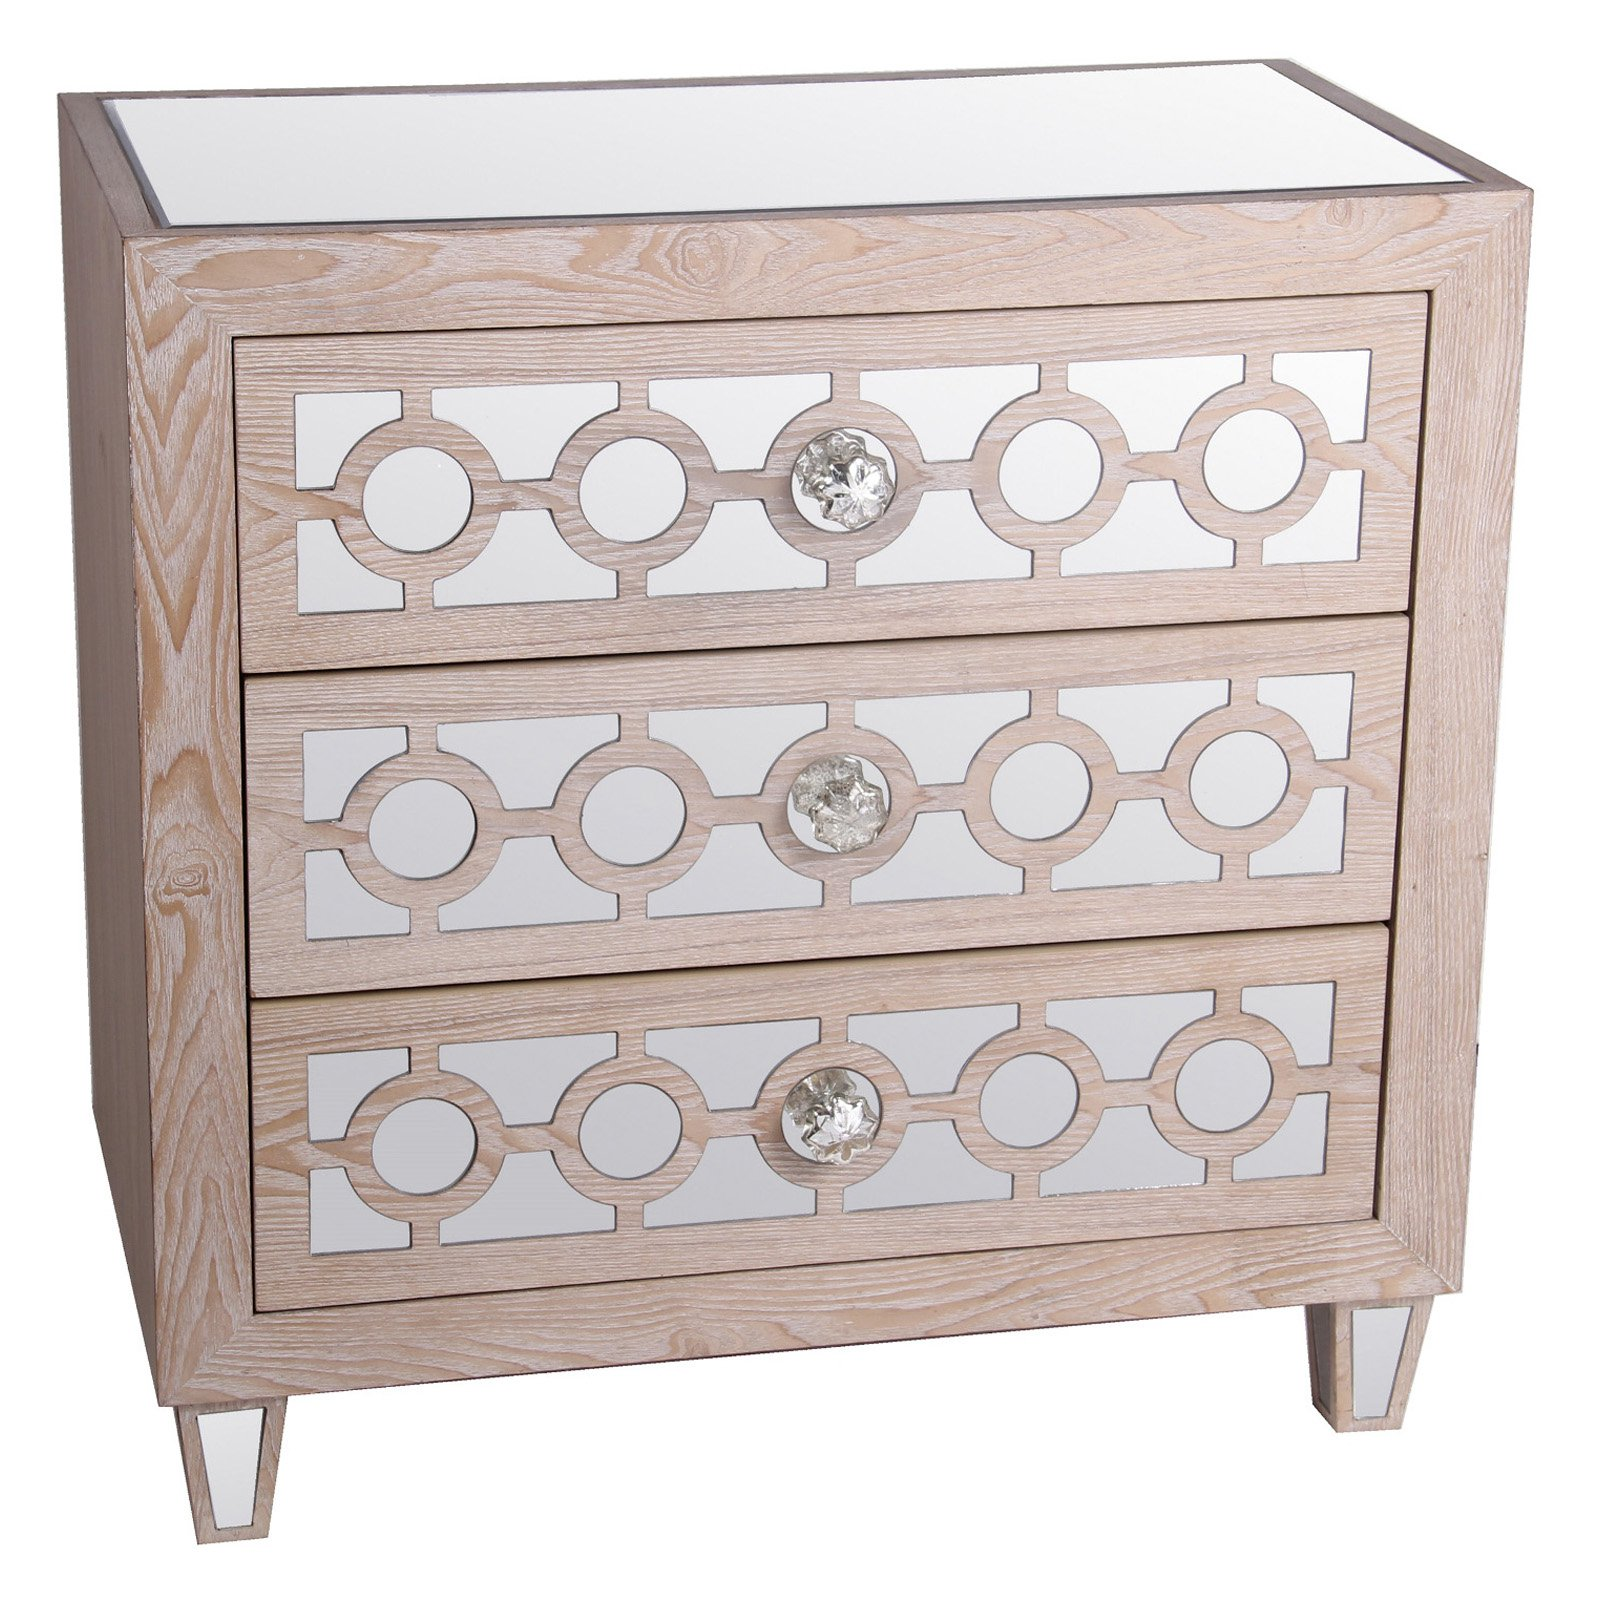 Privilege International Mirrored Accent Stand With 3 Drawers   Natural White